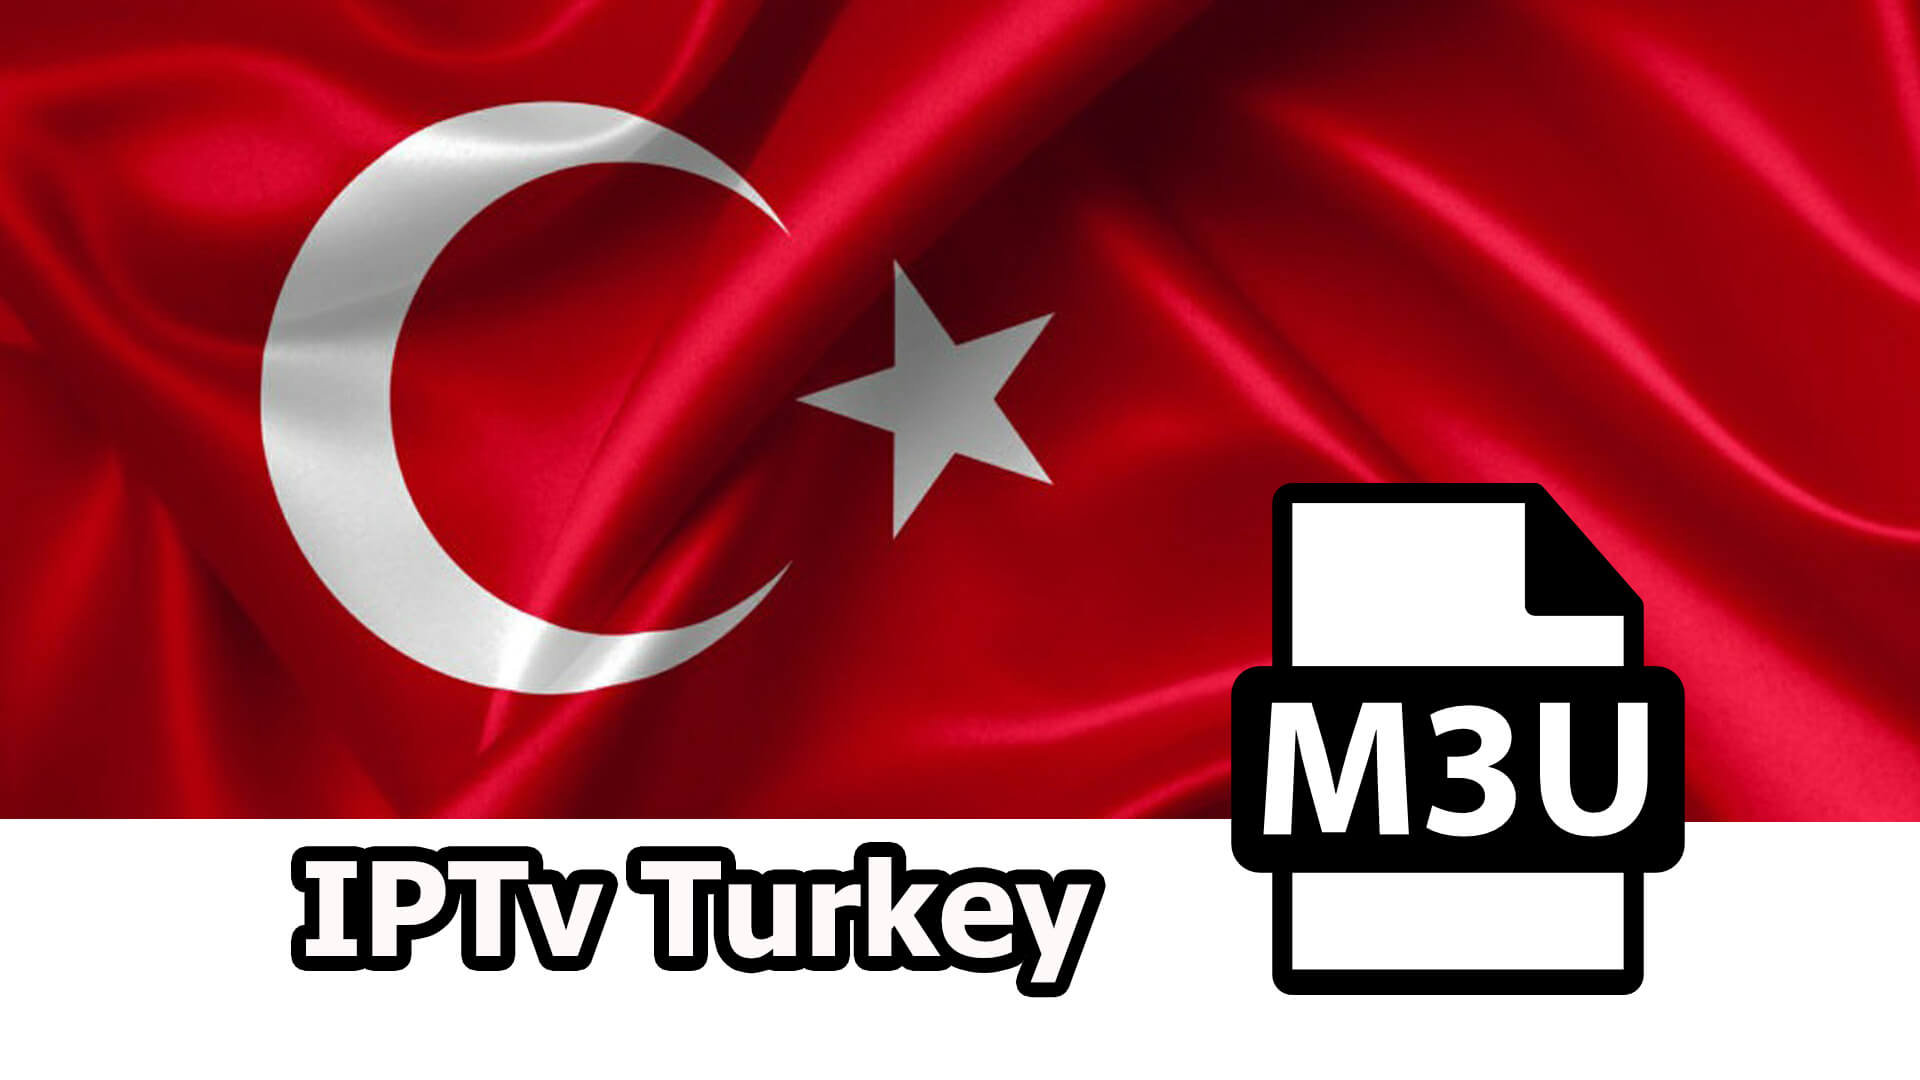 IPTv TURKEY M3u Best Playlist Updated 2021🔥 IPTv4Everyday.com